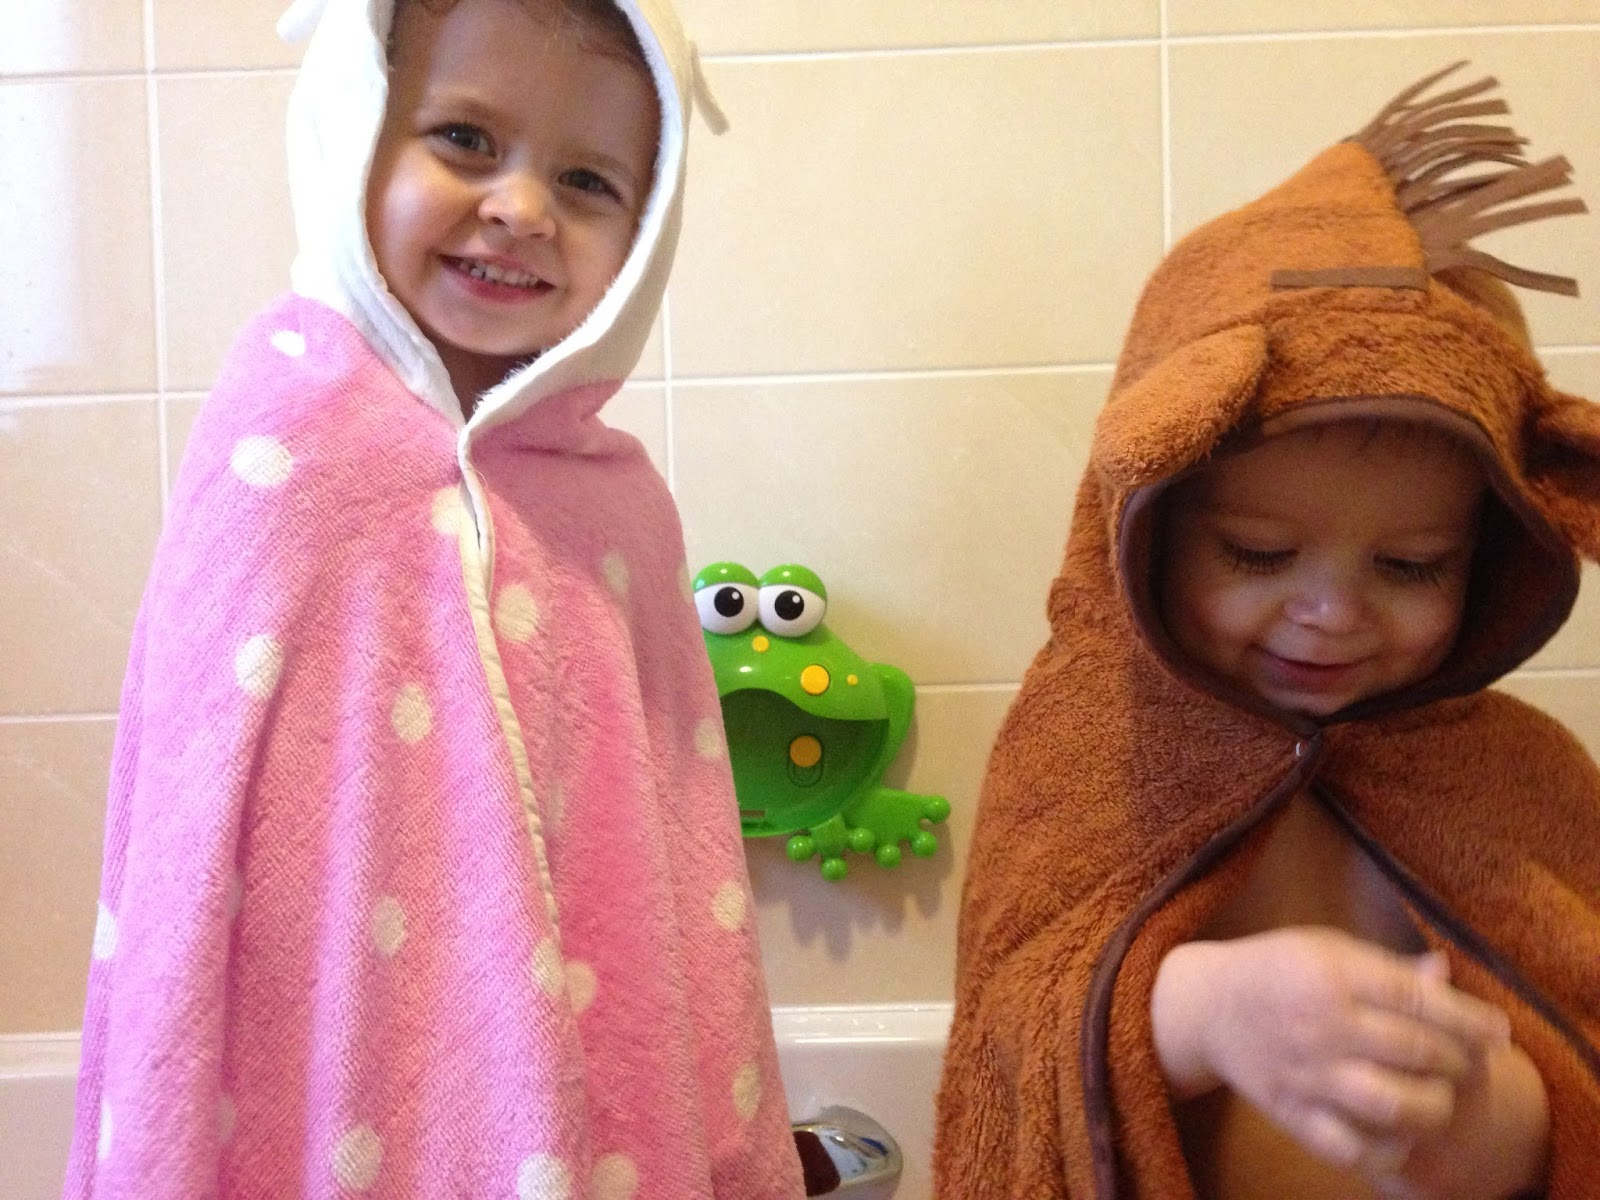 Children In Bath Towels